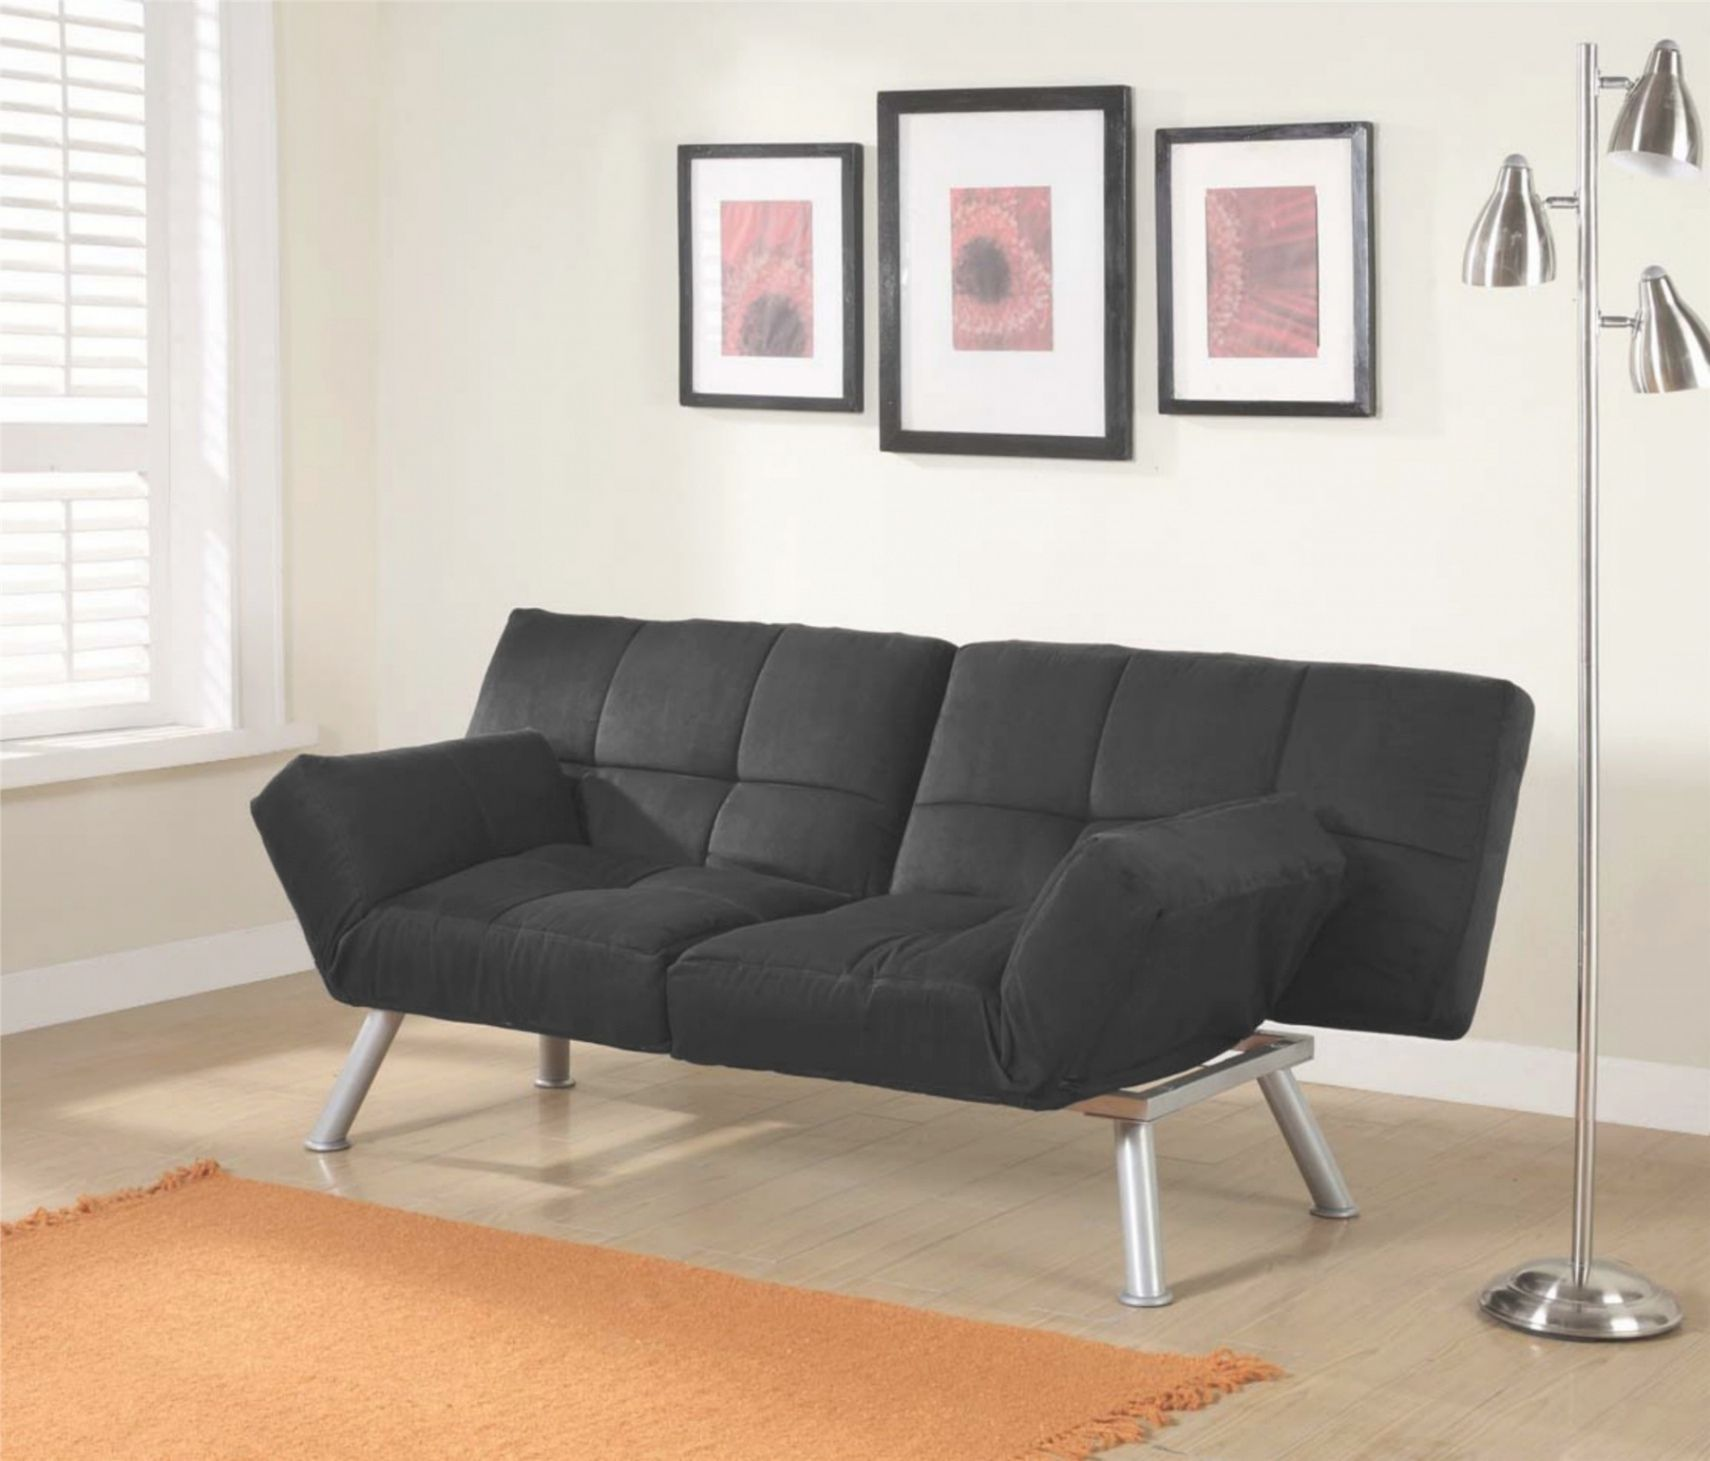 Cheap Futons For Sale Free Shipping | Sleeping Furniture ...